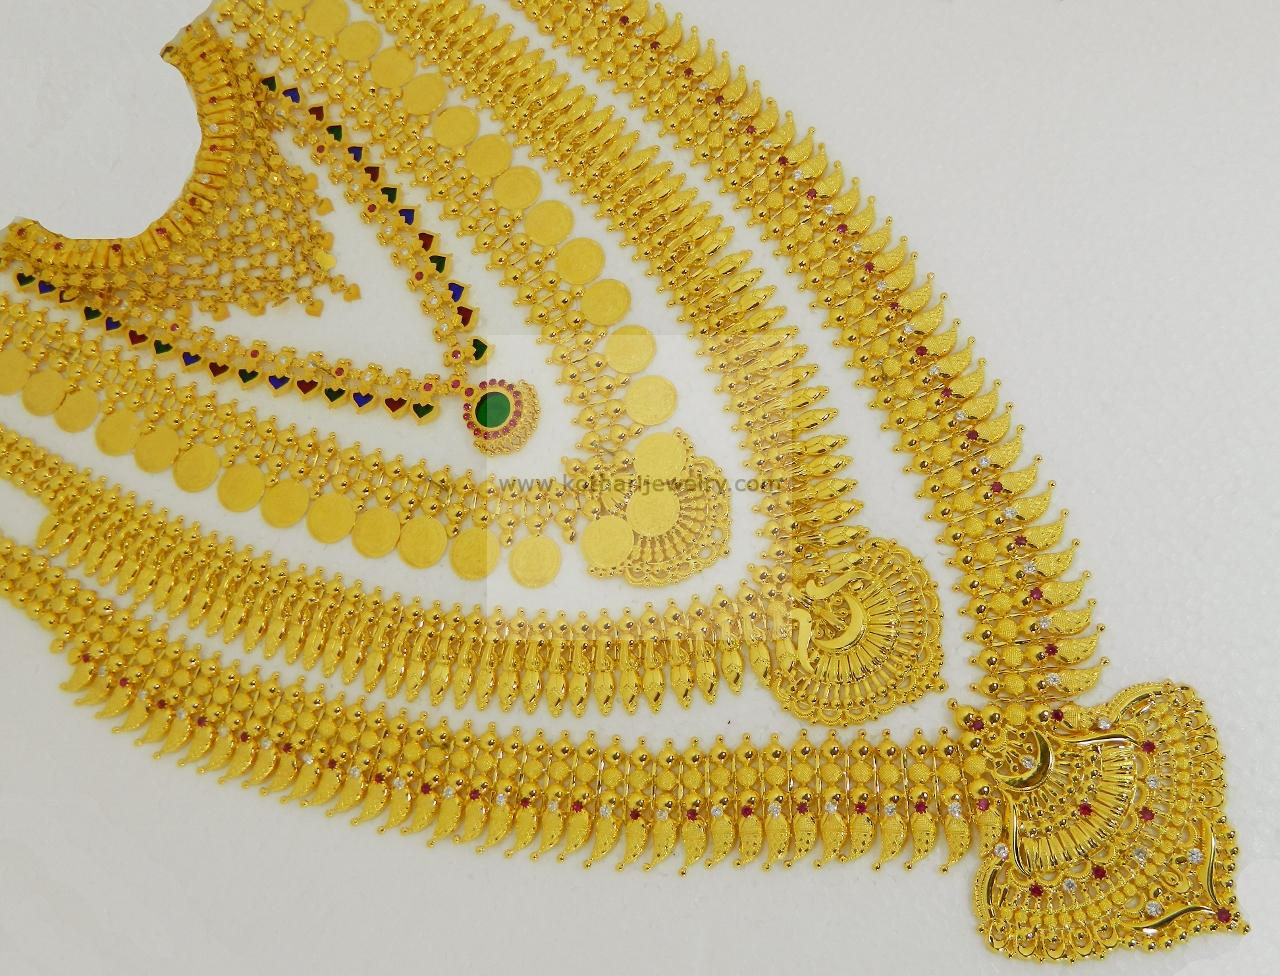 Necklaces / Harams - Gold Jewellery Necklaces / Harams (NK00038376 ...